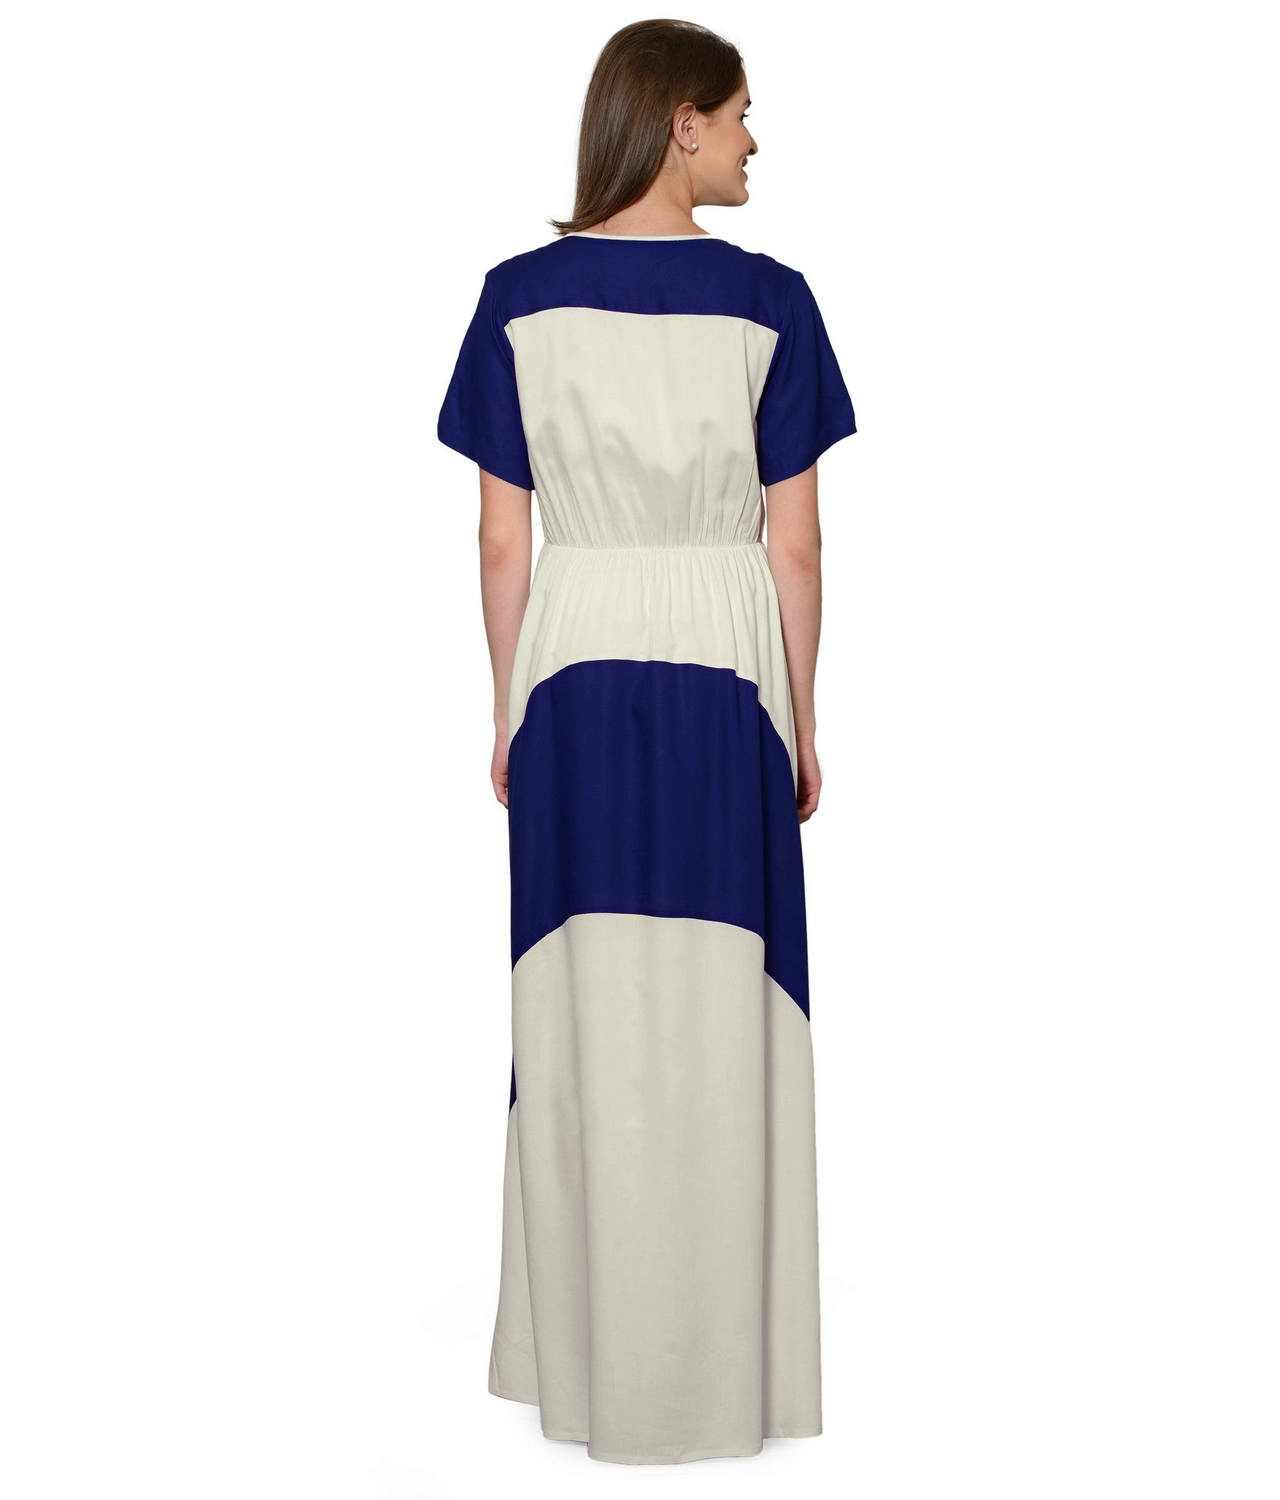 Color Block Slim Fit Maxi Dress Gown in Royal Blue:Off-White